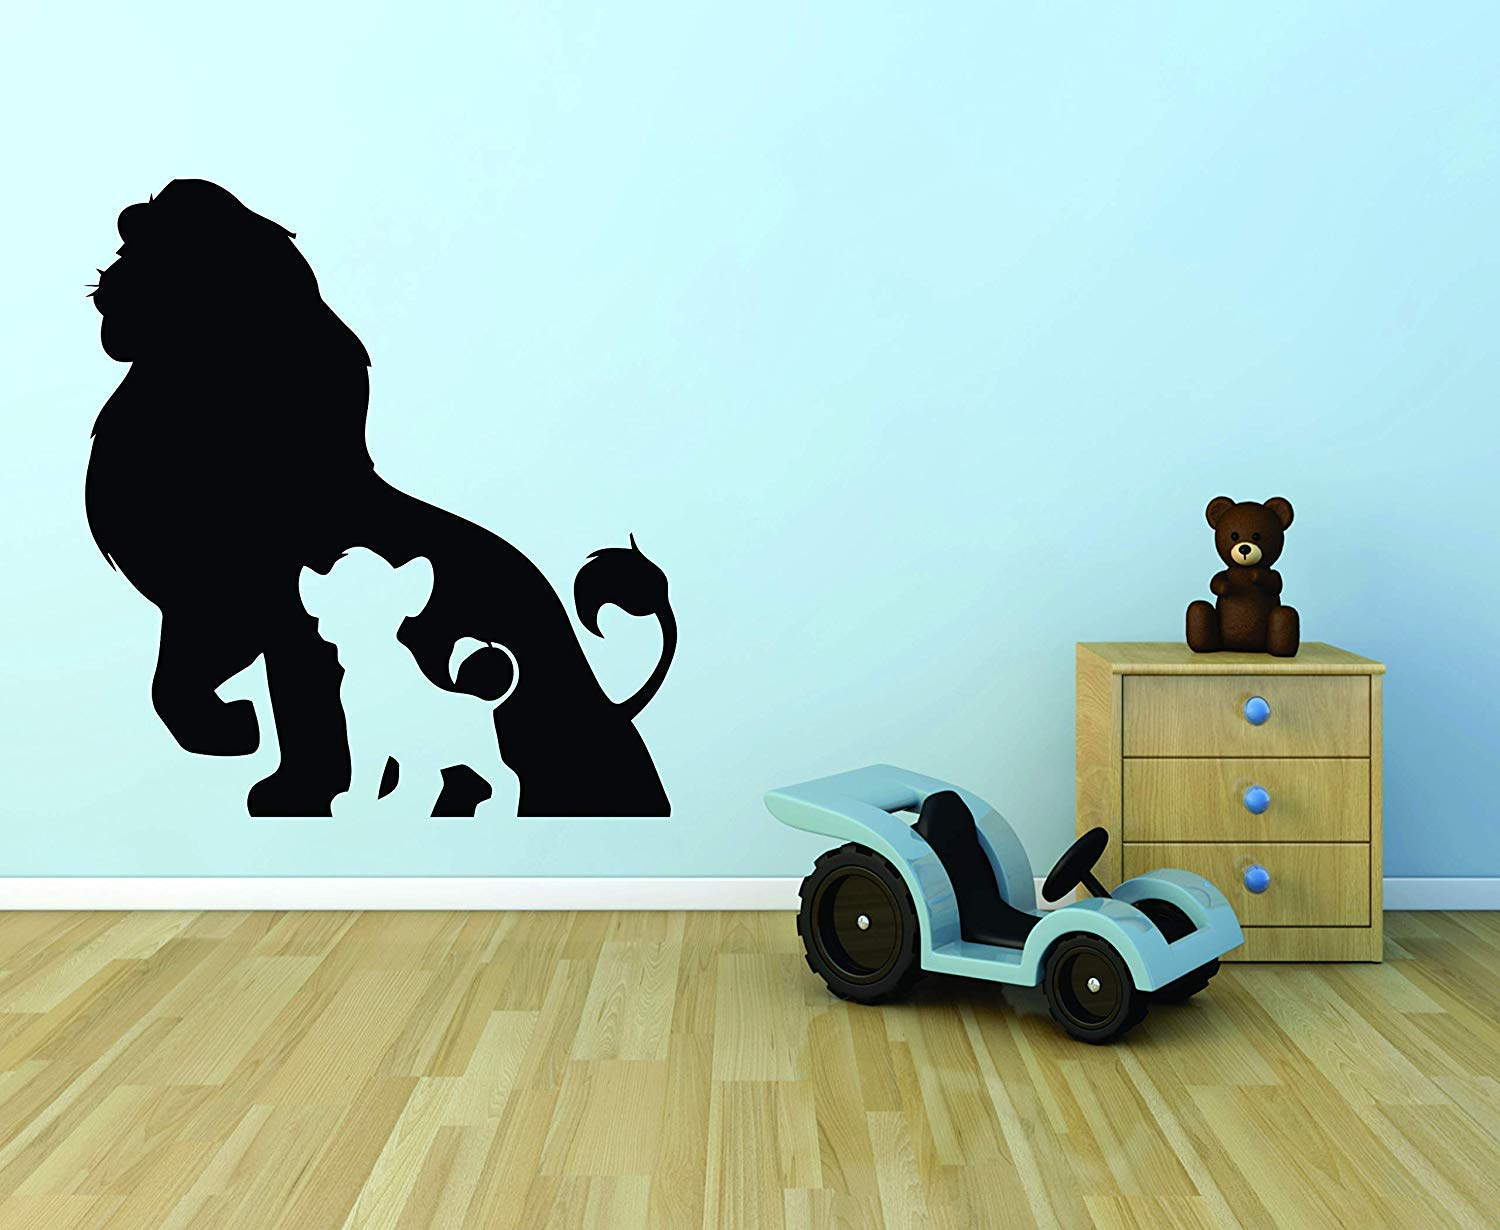 The LION KING WALL DECALS FOR KIDS ROOMS Simba Mufasa DESIGNS Decor Lions Boys Boy Childrens Creative Animated Vinyl Decal Removable Stickers for Bedrooms Artwork Family Stick together Size 40x35 inch